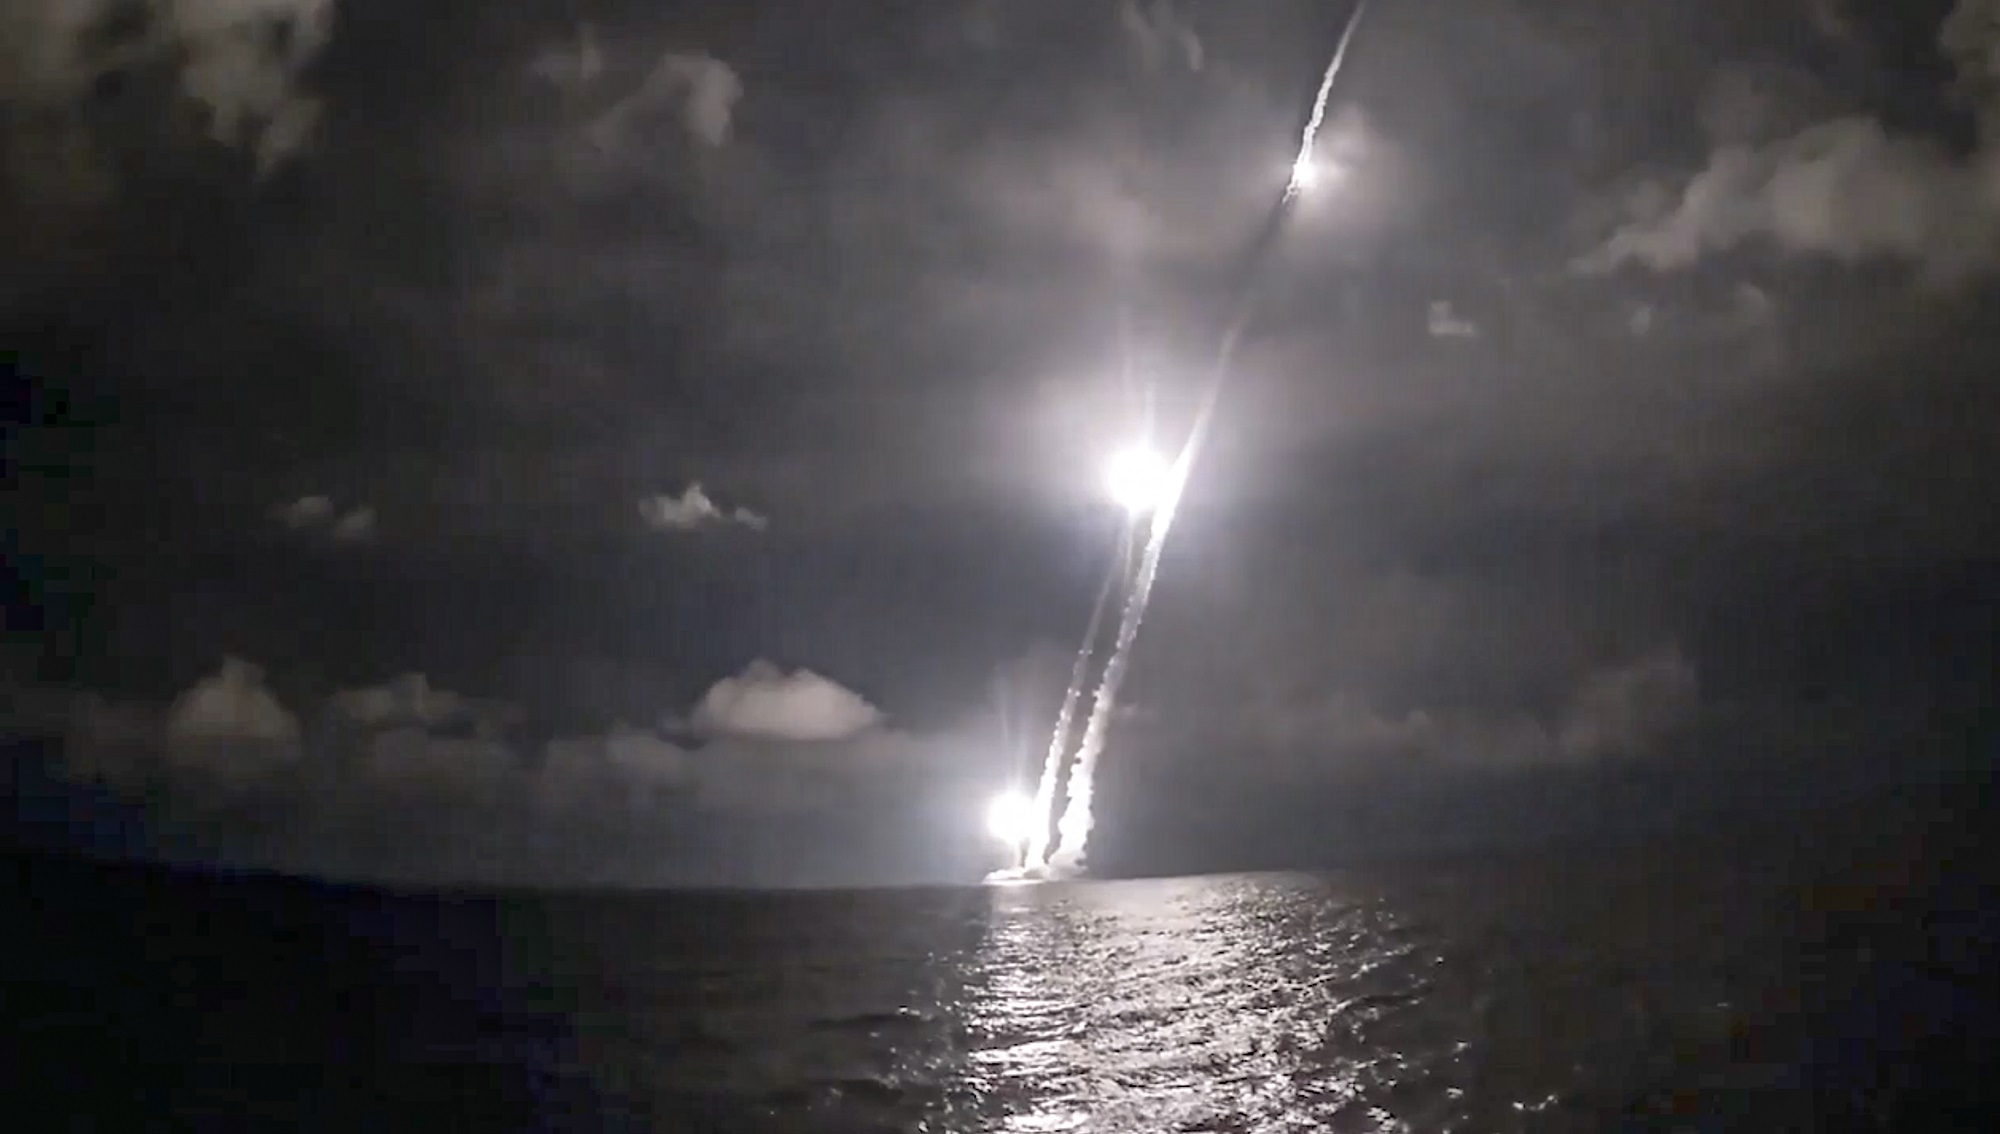 Intercontinental ballistic missiles are launched by the Russian Navy nuclear submarine Vladimir Monomakh from the Sera of Okhotsk on Dec. 12, 2020. (Russian Defense Ministry Press Service via AP)